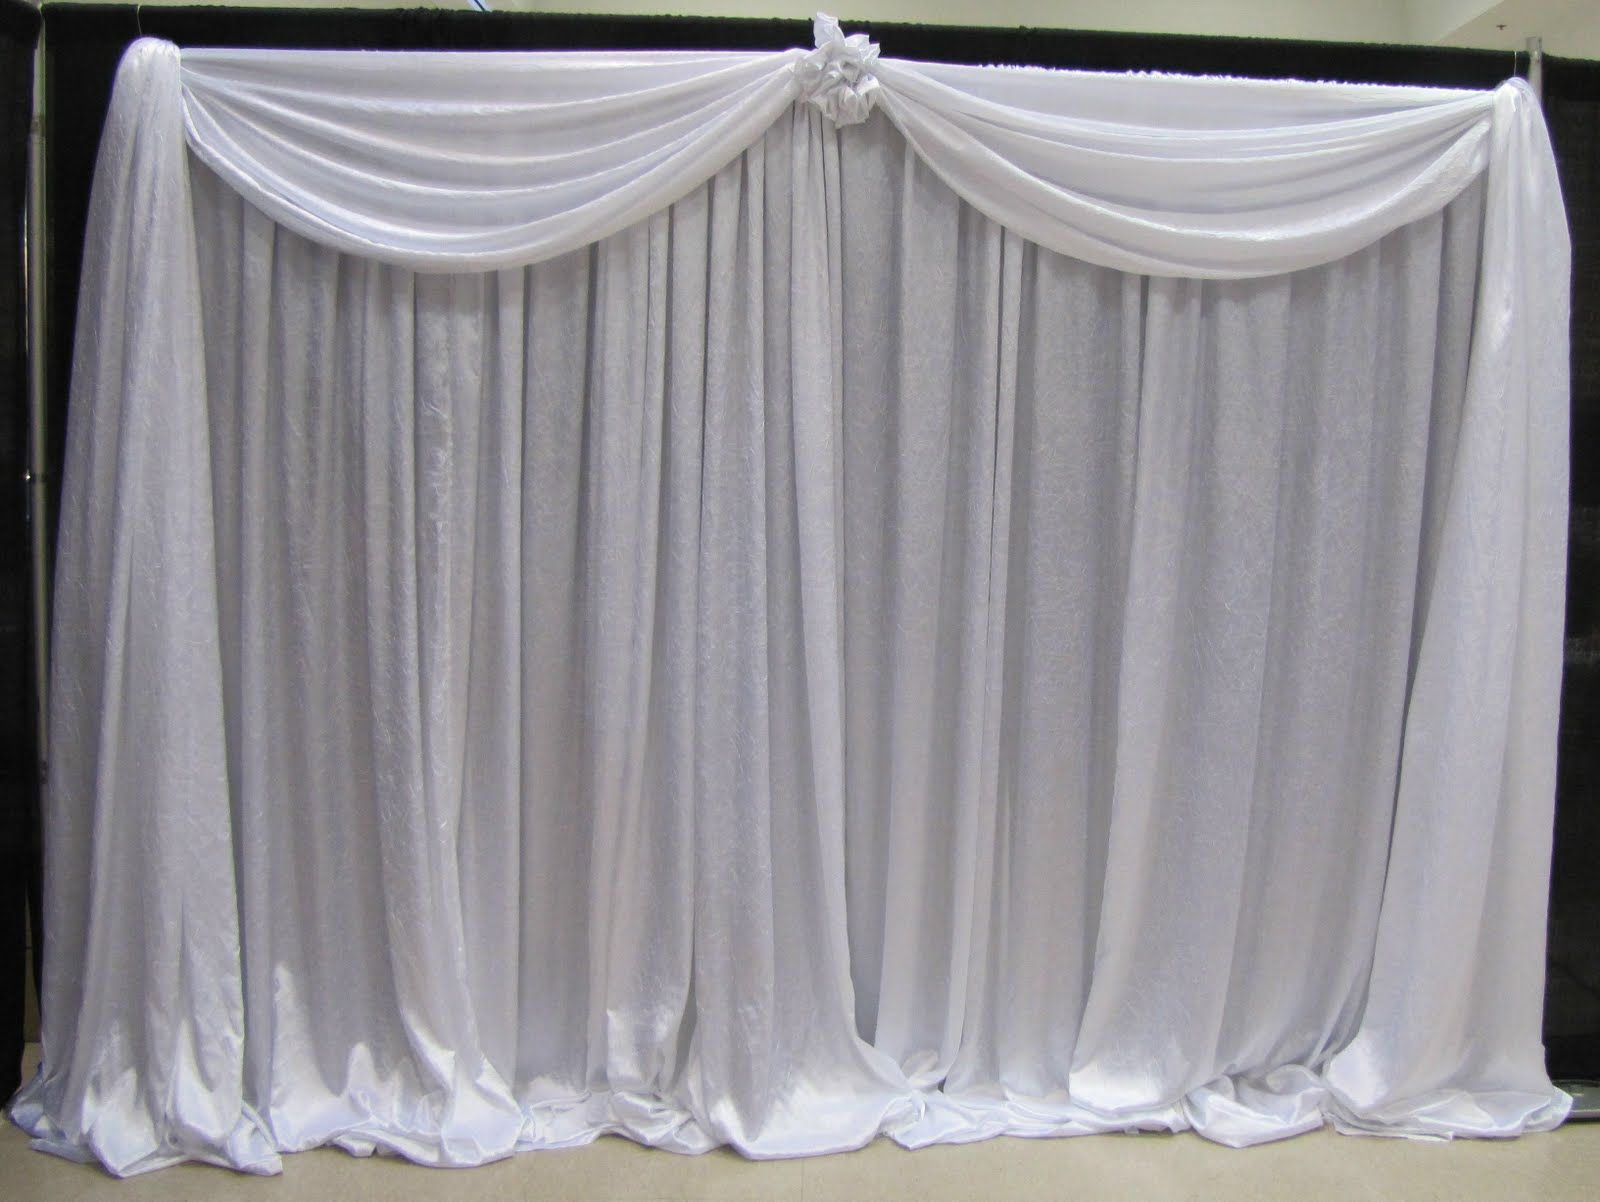 Draping Curtains Wedding Backdrops Wholesale Drapes And Curtains For Weddings